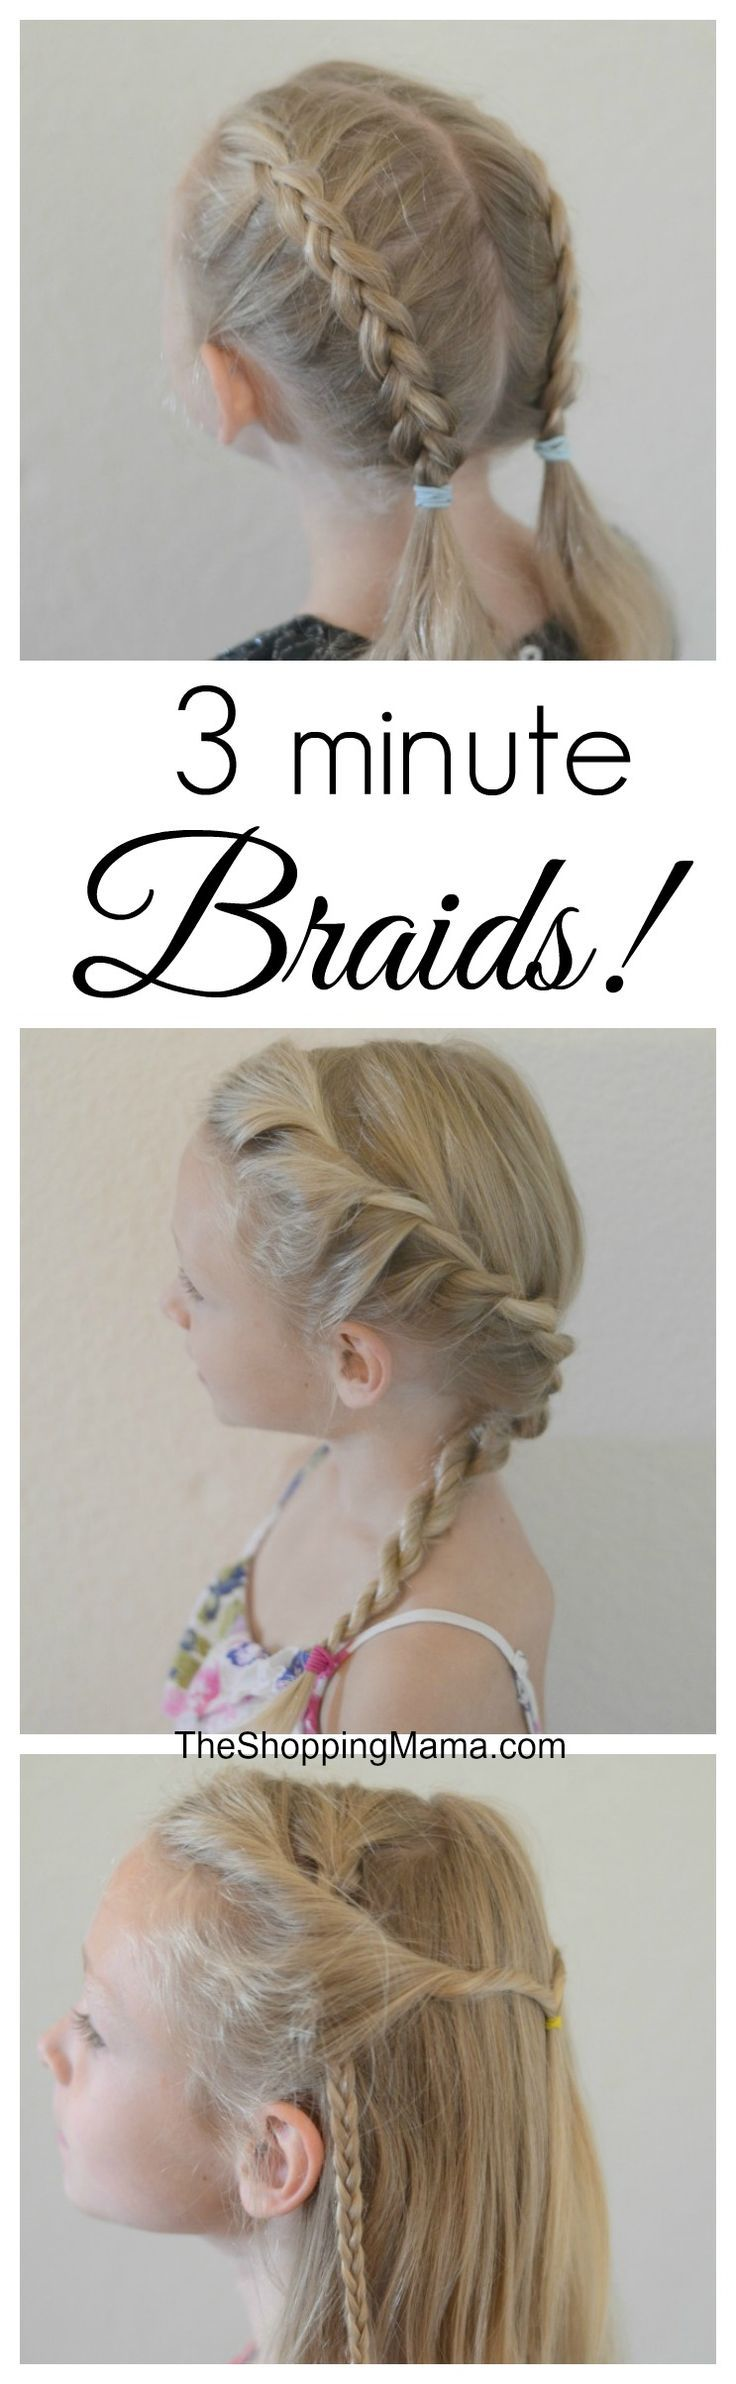 best 25+ kid braids ideas on pinterest | cornrow styles for girls